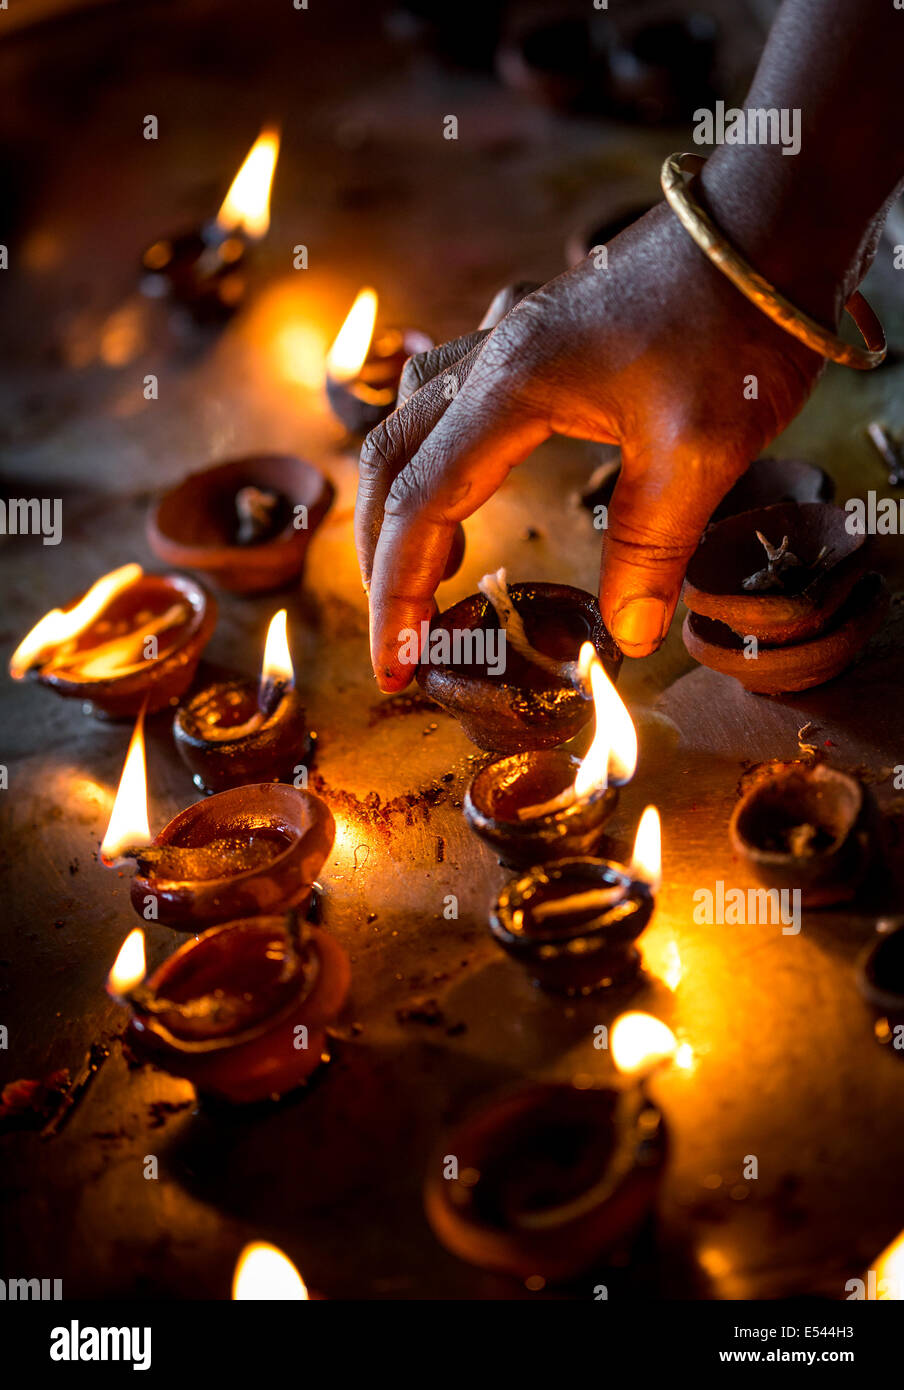 Burning candles in the Indian temple. Diwali – the festival of lights. Stock Photo